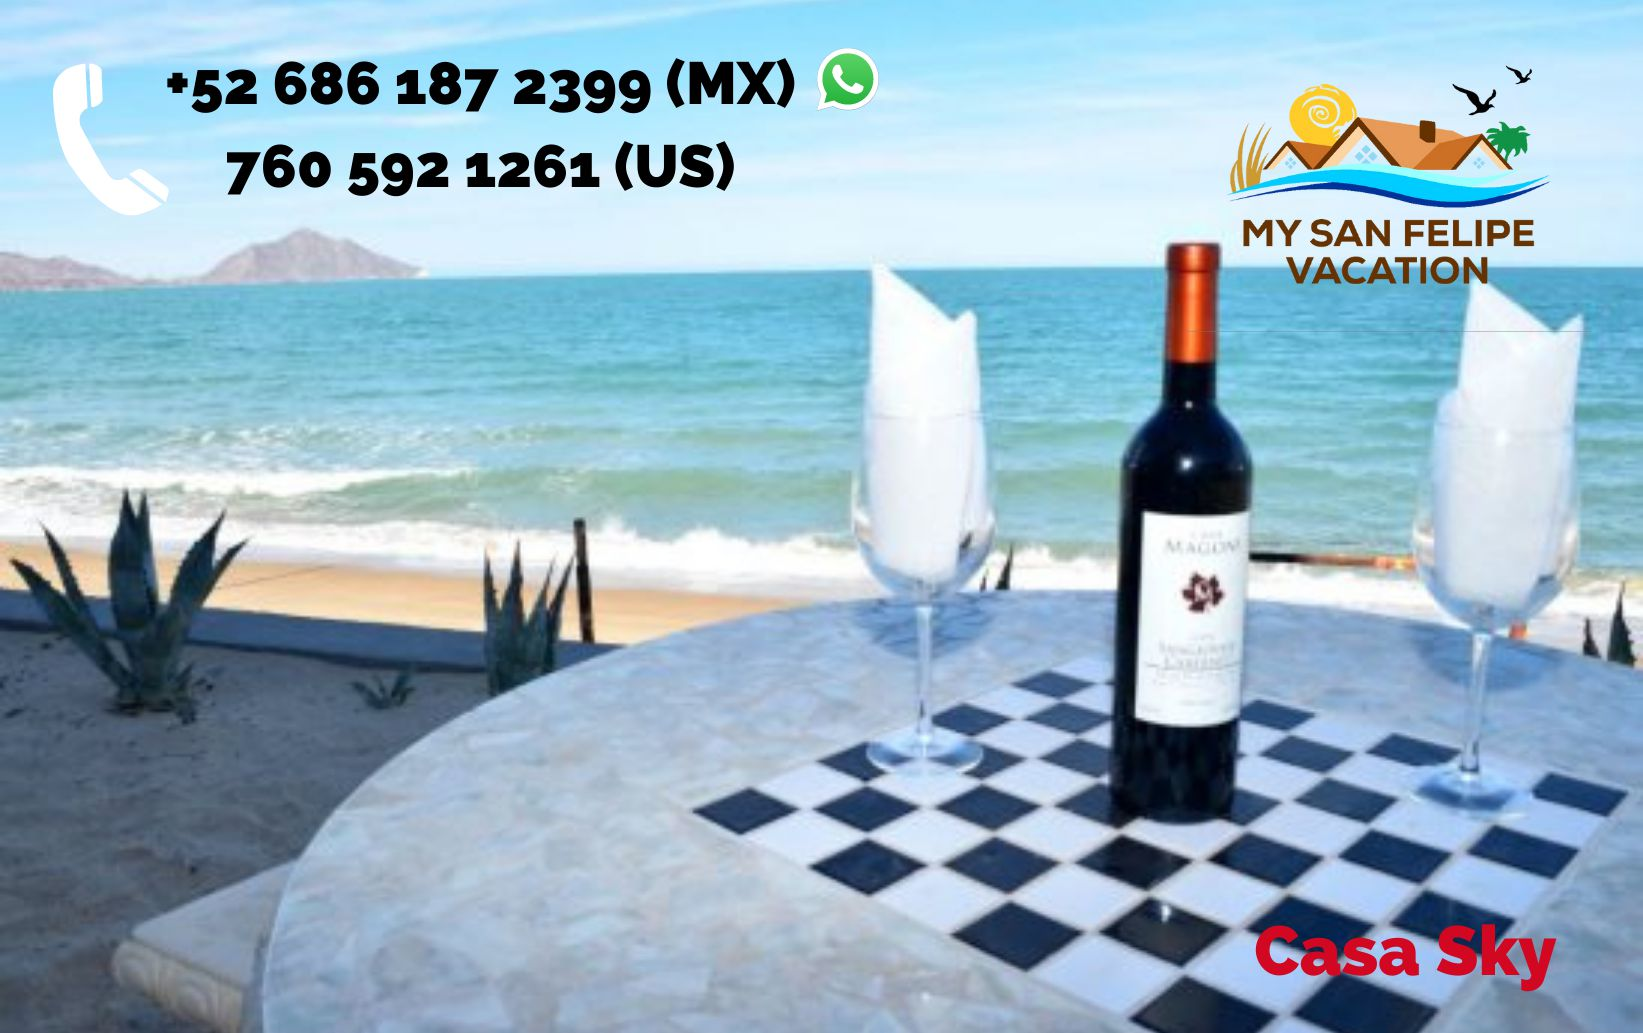 las palmas sky house patio table with wine and glasses over looking the sea